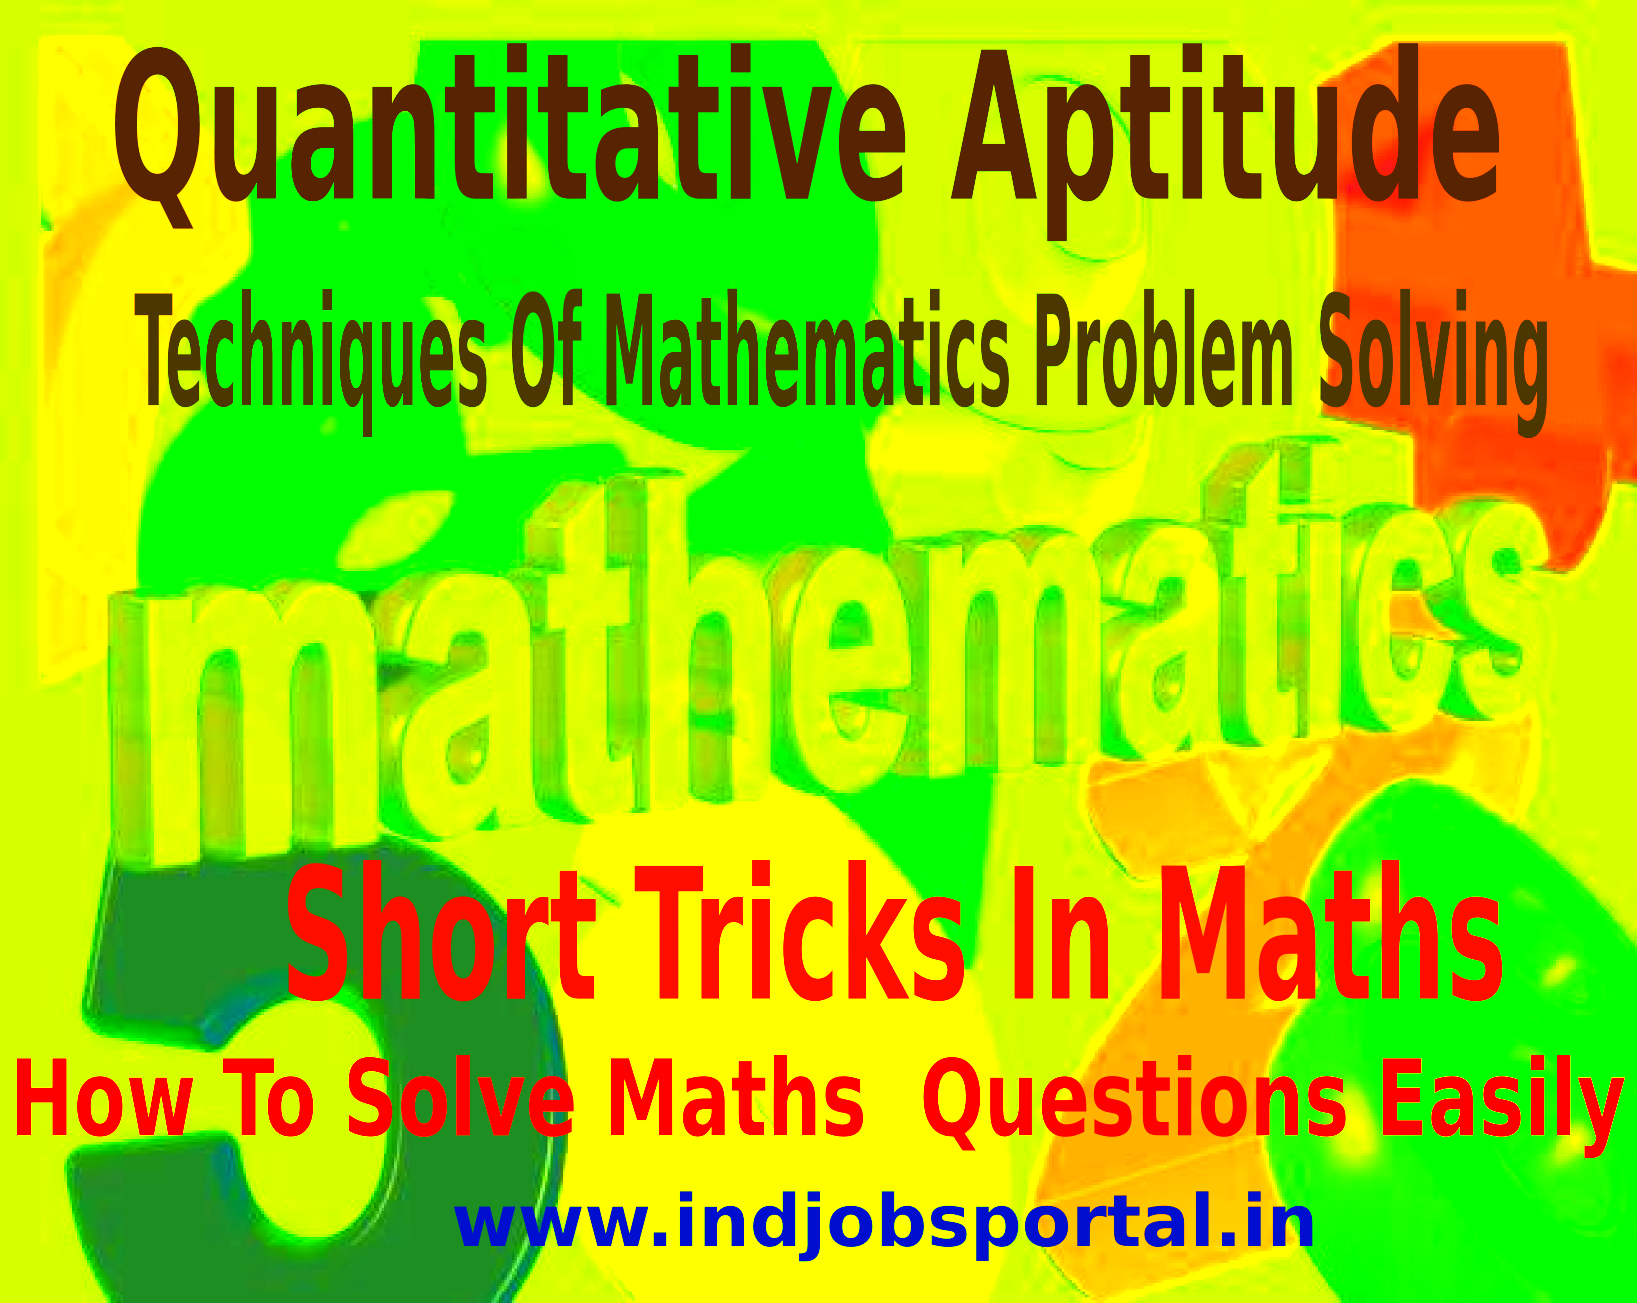 Maths Tricks, Techniques Of Mathematics Problem Solving And Quantitative Aptitude